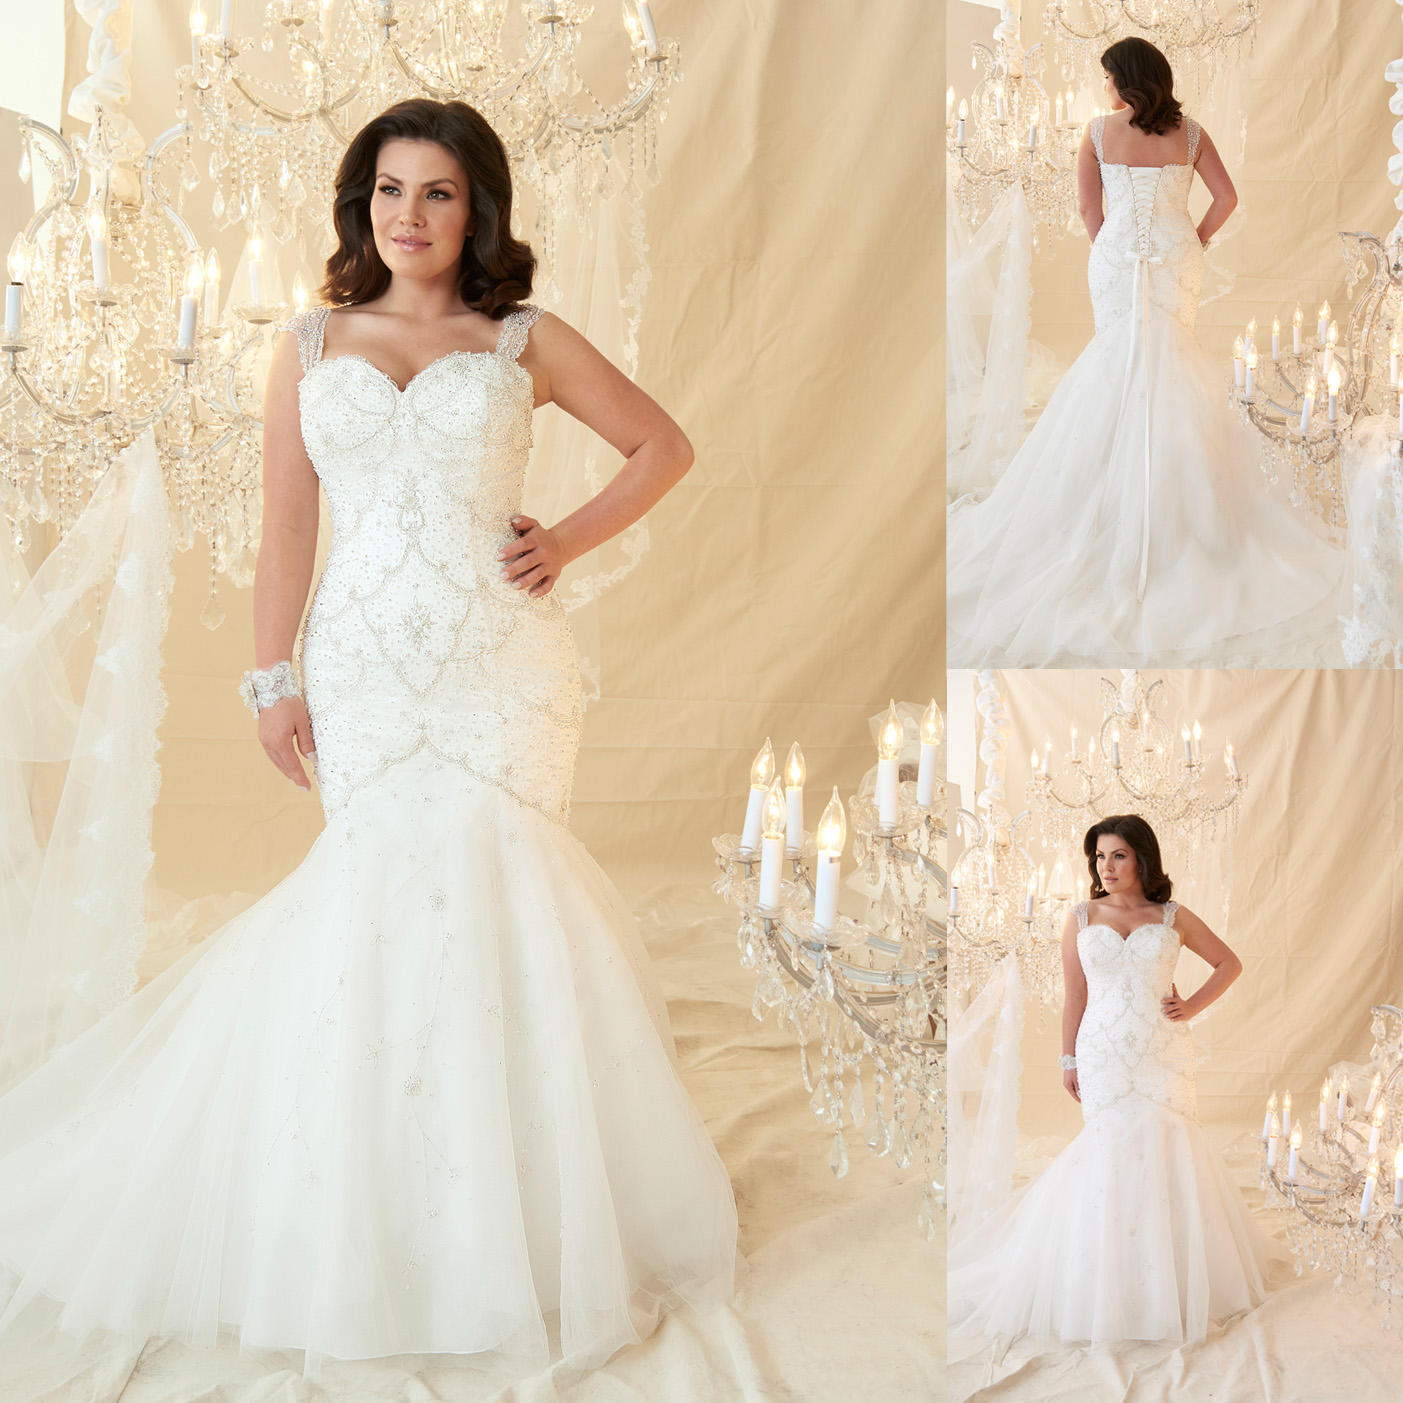 Andre Callista Bridal Gown,